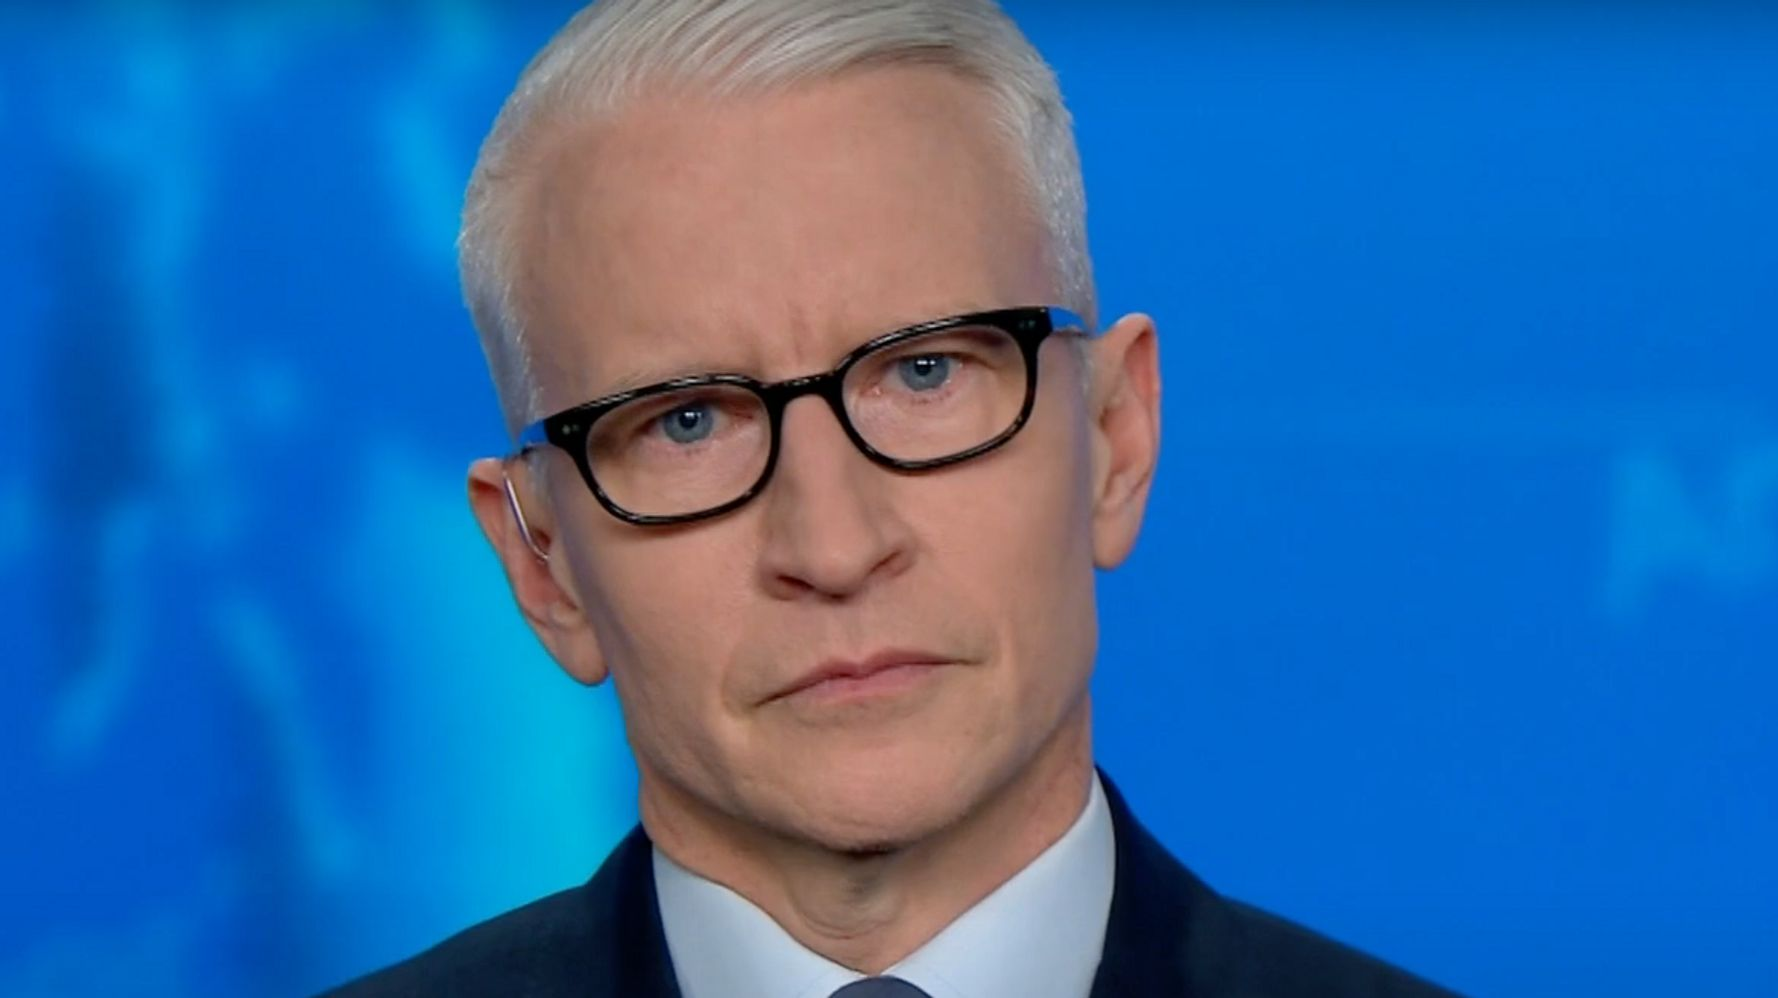 Anderson Cooper Spotlights 'What Really Matters' Right Now In Emotional Monologue